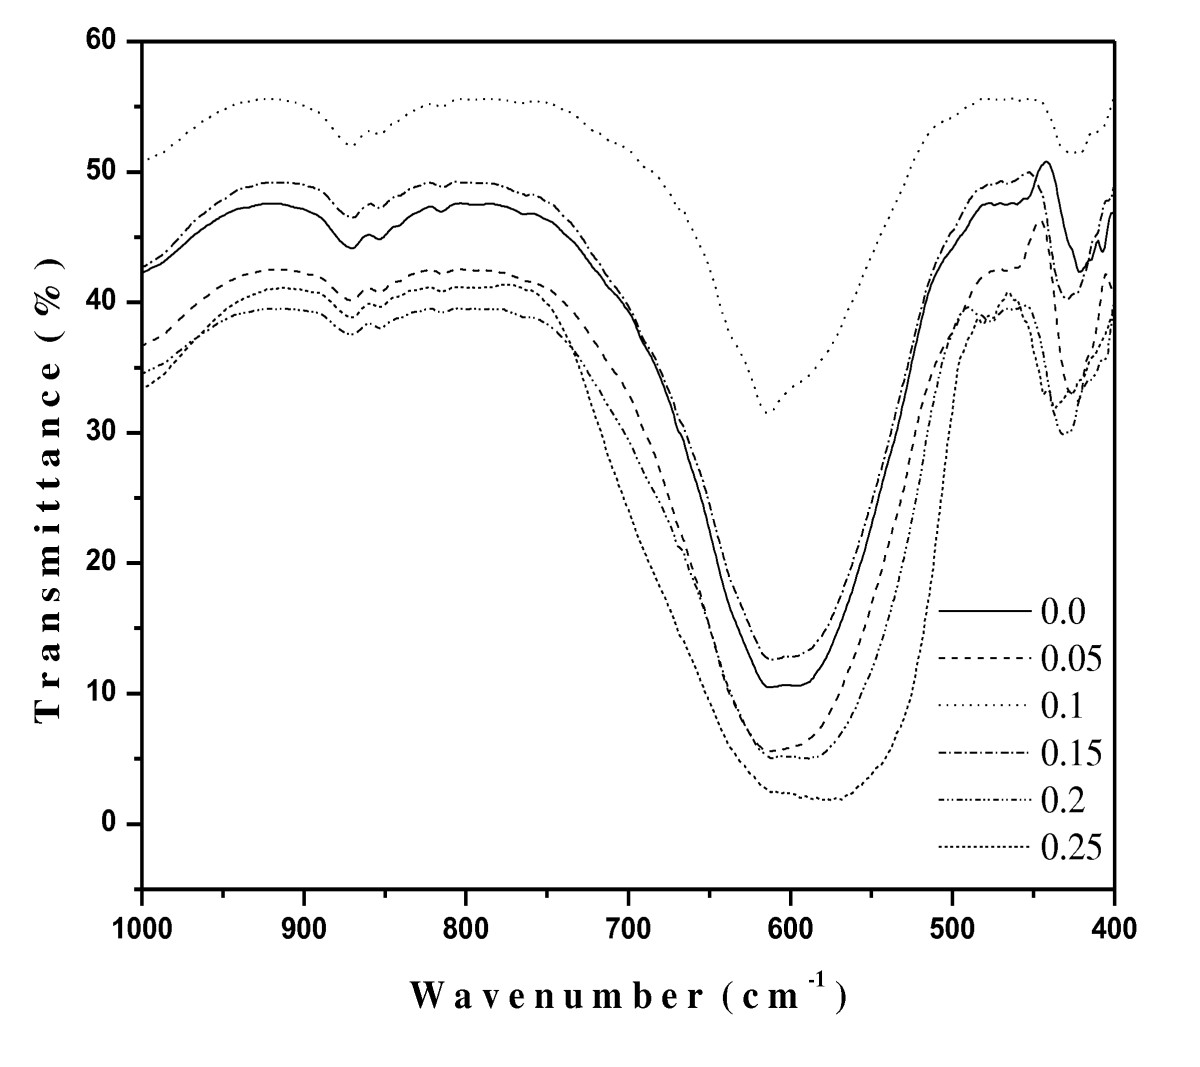 http://static-content.springer.com/image/art%3A10.1186%2F1556-276X-7-112/MediaObjects/11671_2011_Article_686_Fig5_HTML.jpg